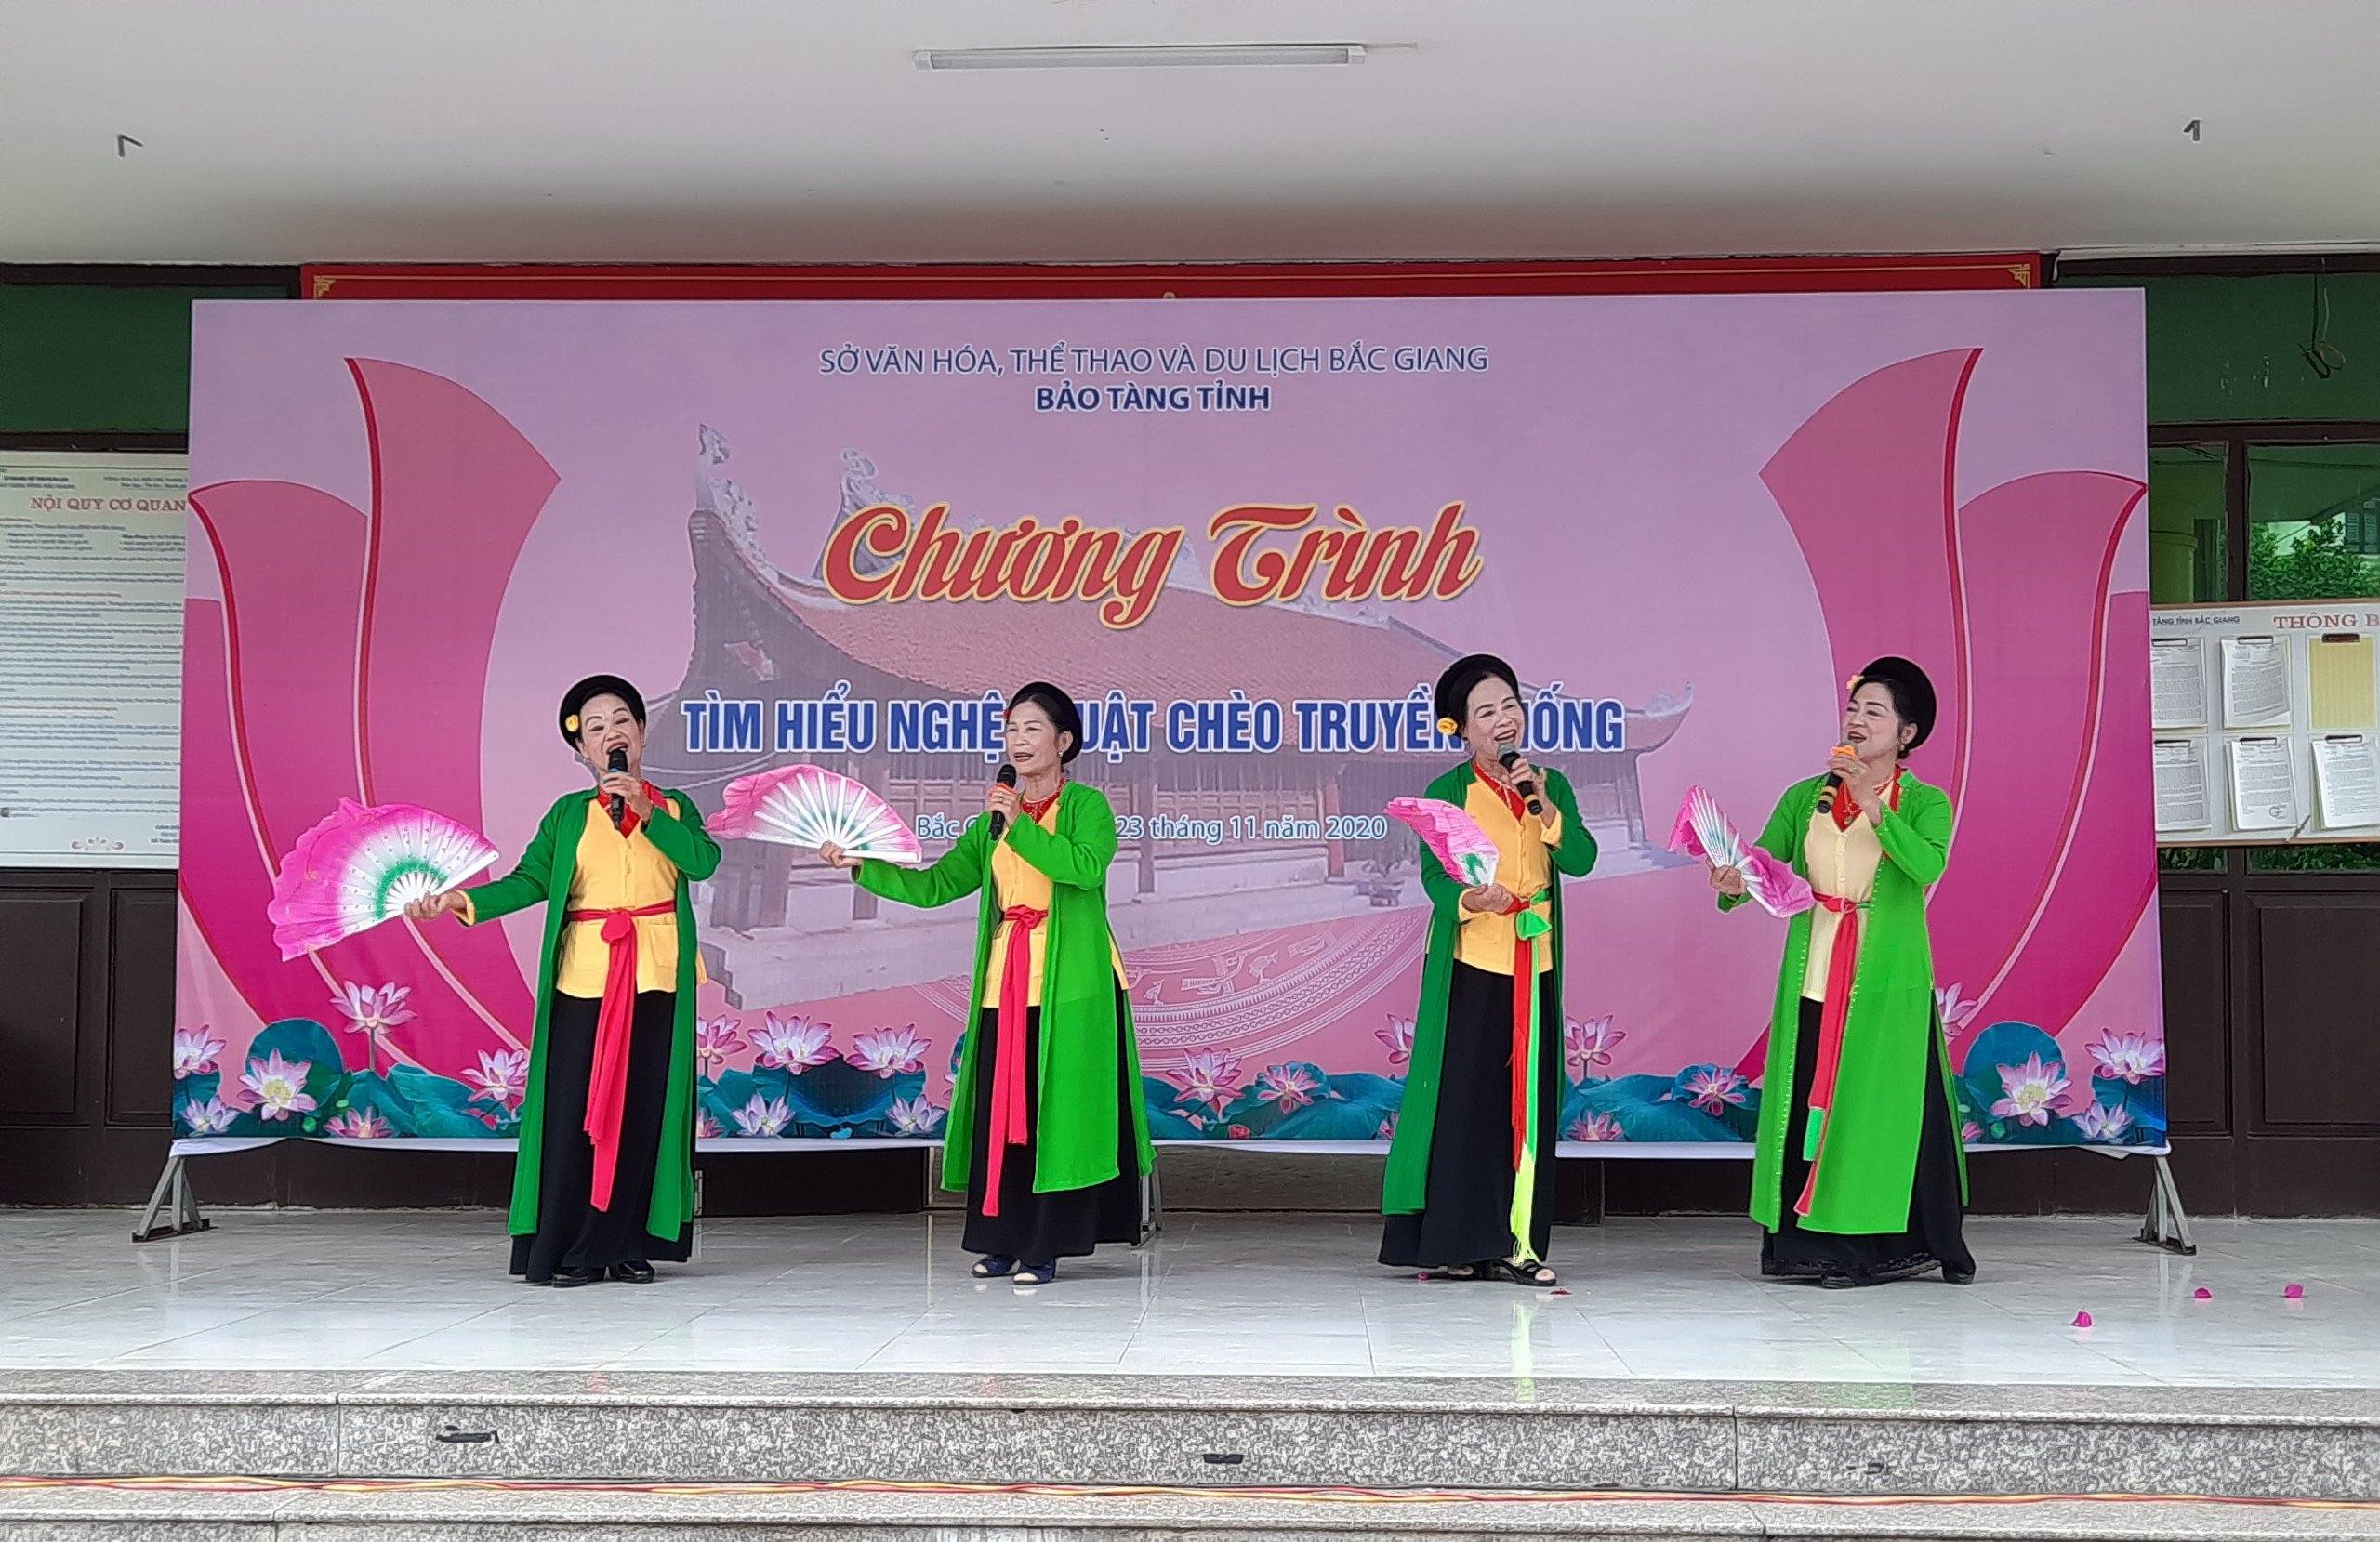 Exchange activities, traditional opera, Bac Giang province, traditional opera, traditional art form, cultural heritage